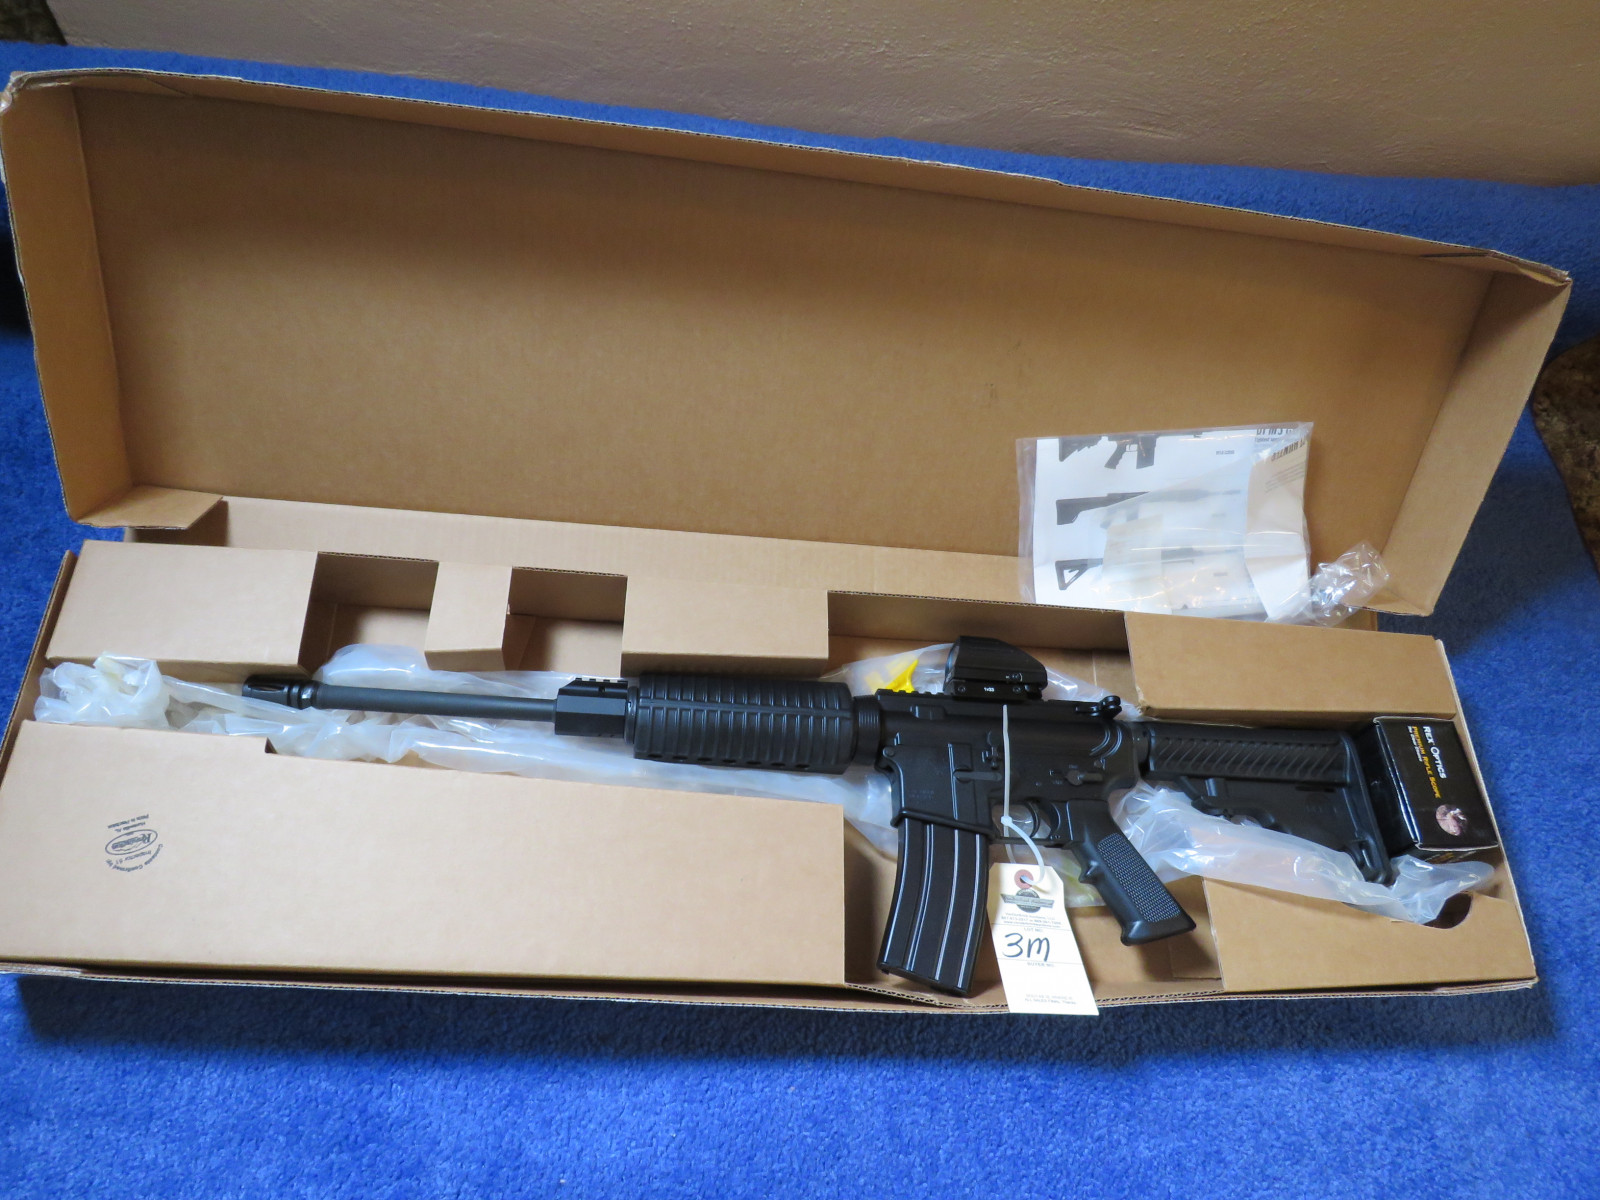 DPMS Panther Arms Model A-15 Type Semi-Automatic Sporting Rifle NIB NF  FFH068974 - Image 1